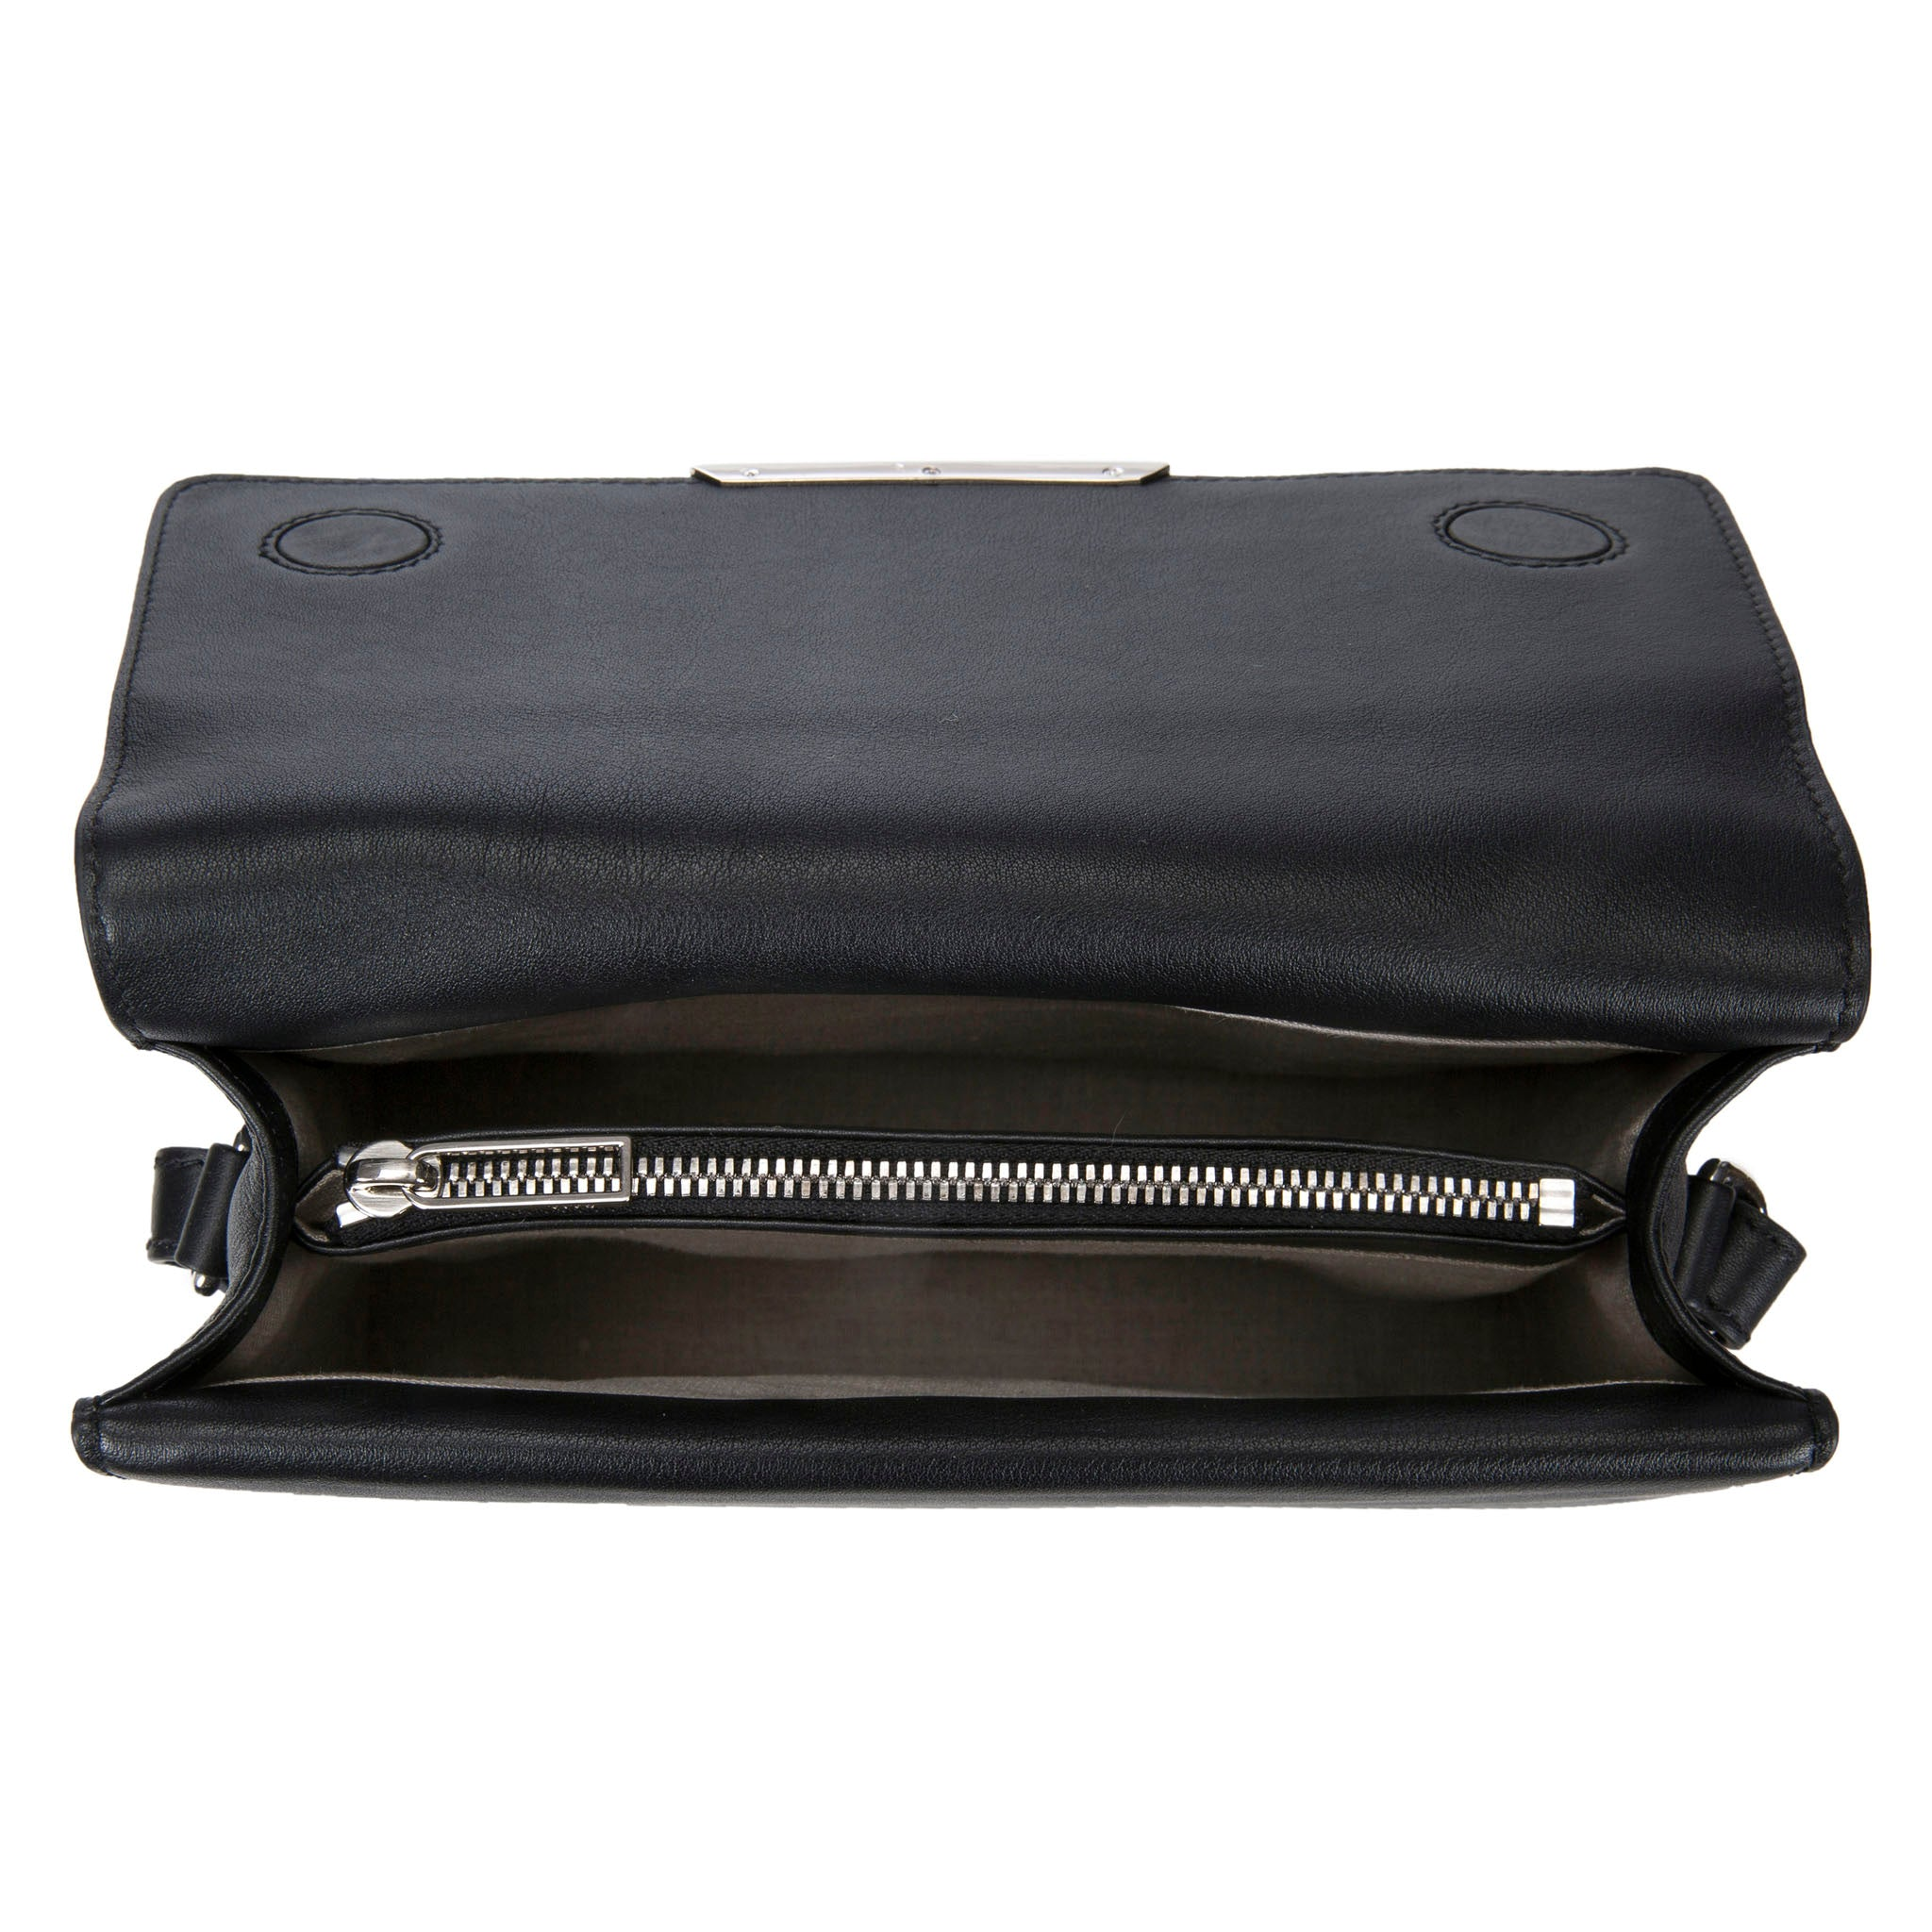 Modern Classic Crossbody Bag Black Shagreen Top And Black Leather Body Inside View Jacq - Vivo Direct